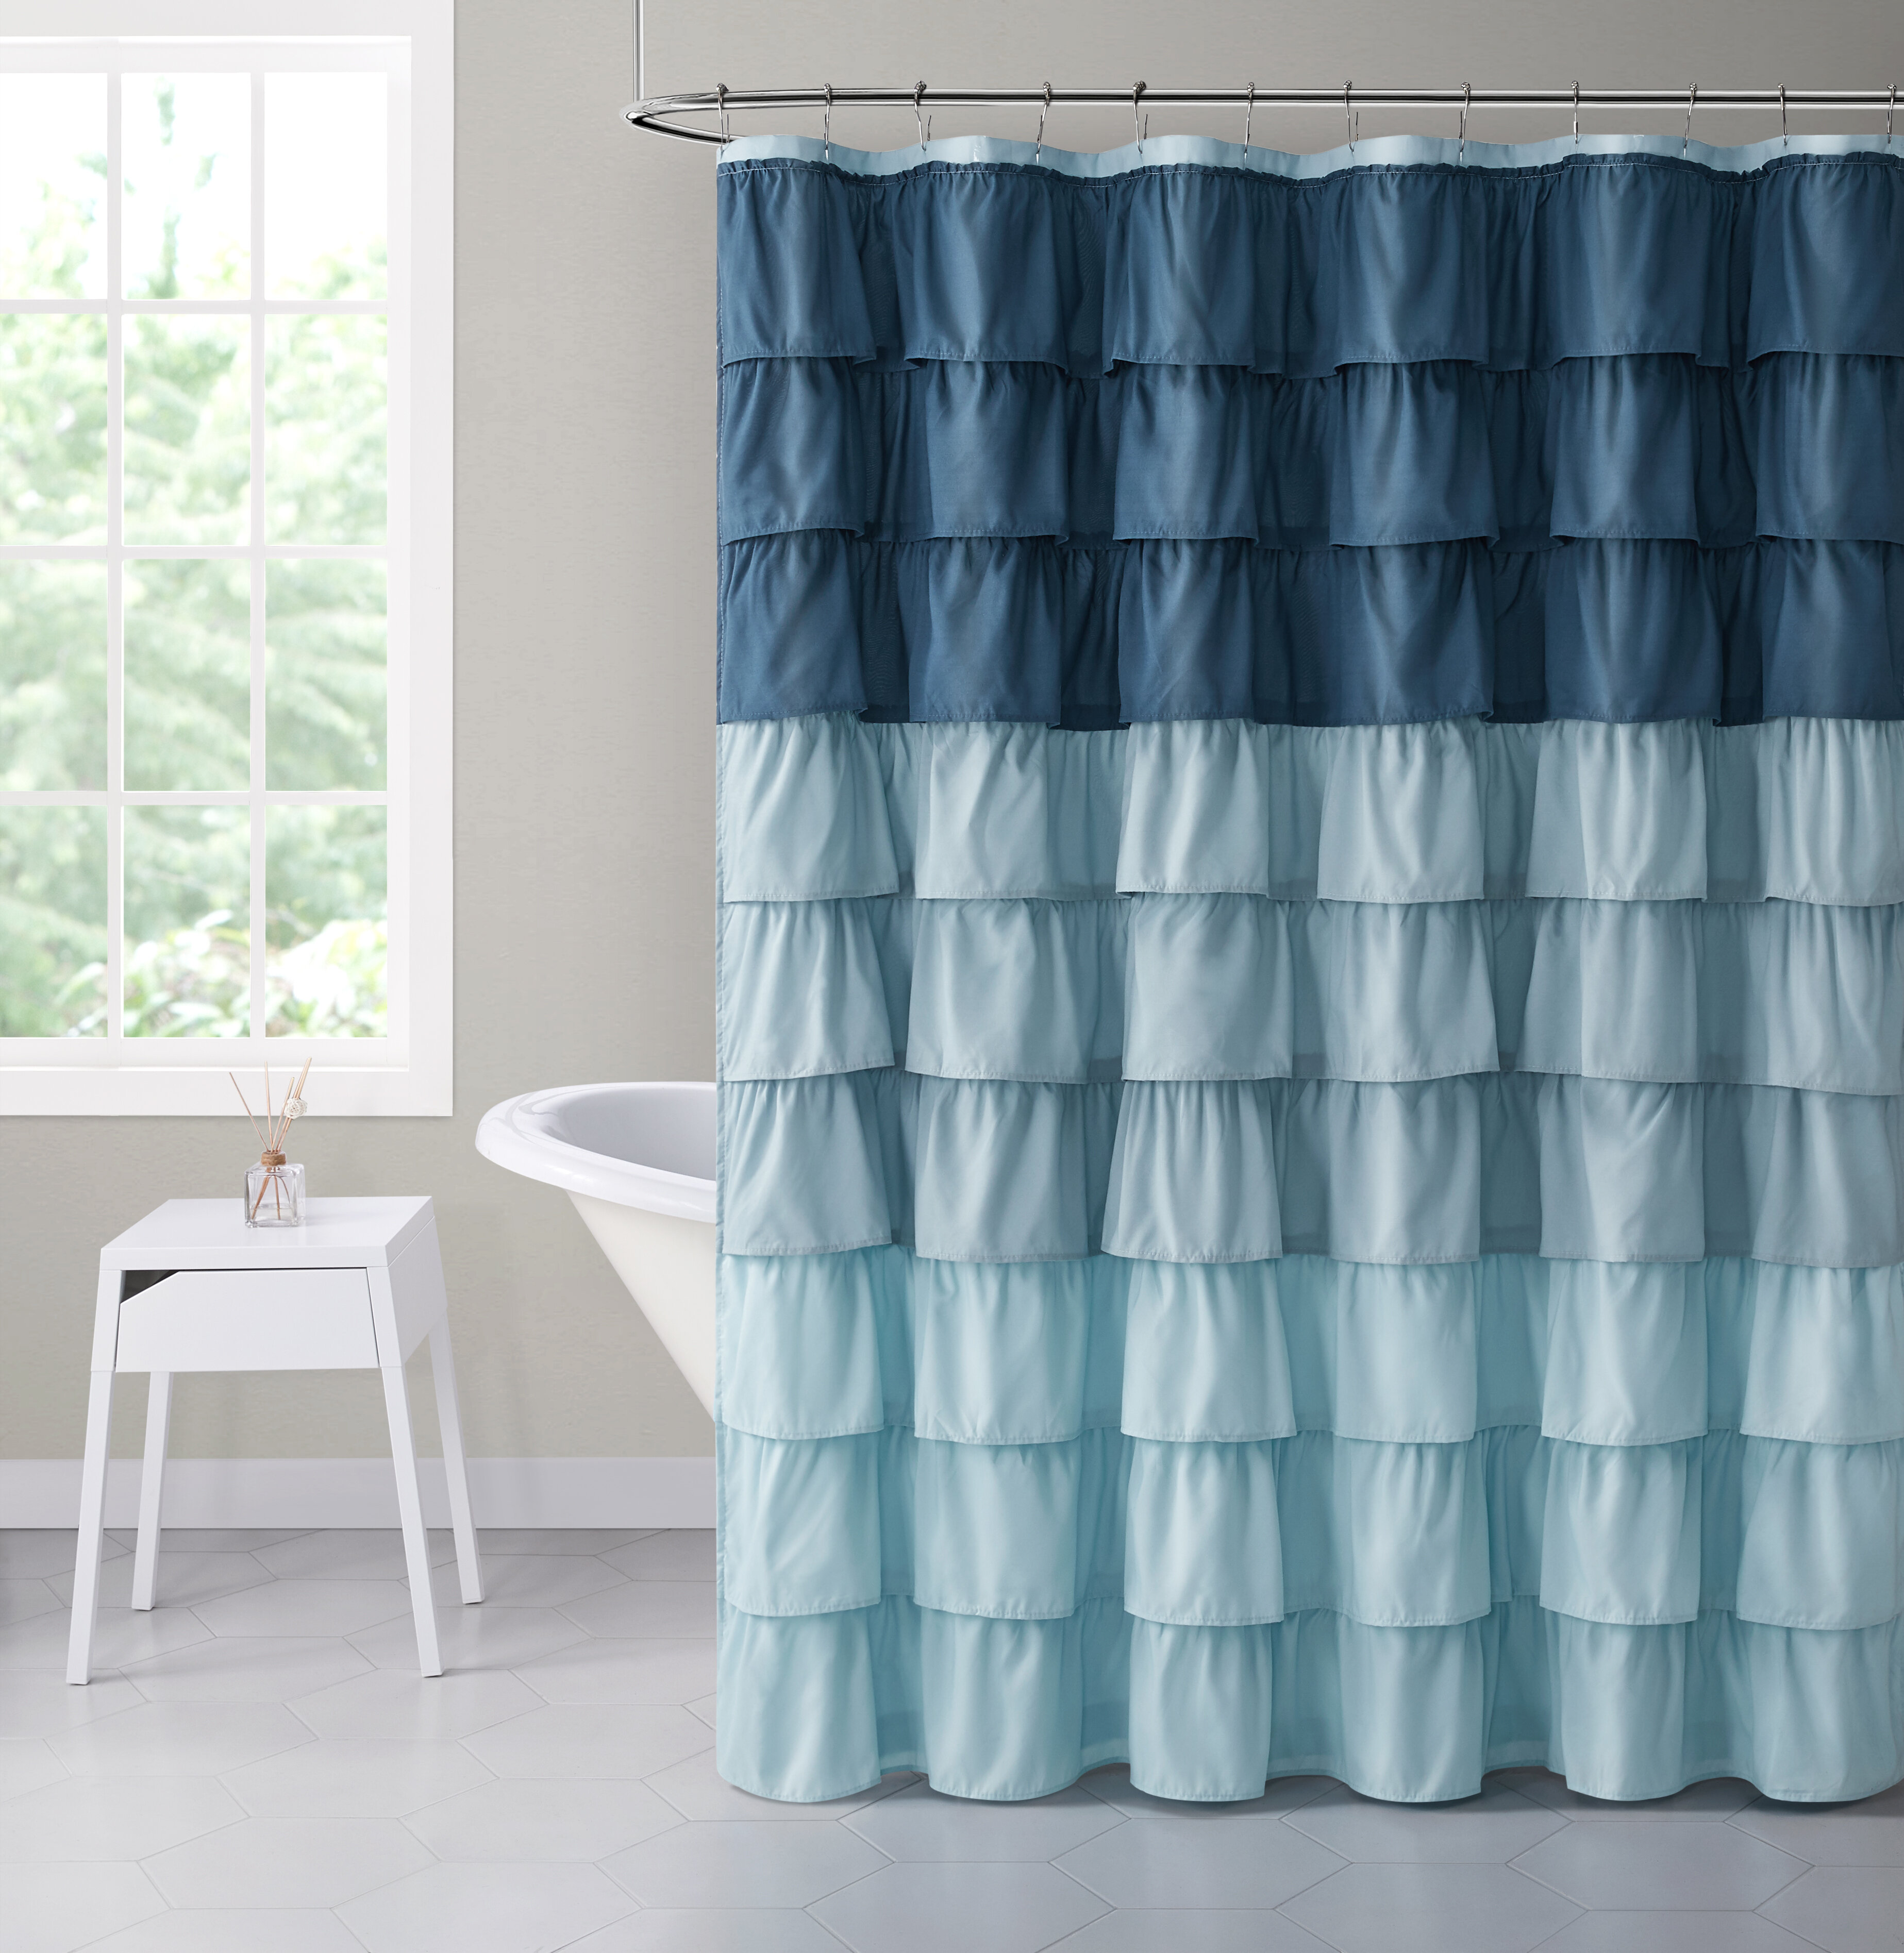 Abstract Shower Curtains Shower Liners You Ll Love In 2021 Wayfair